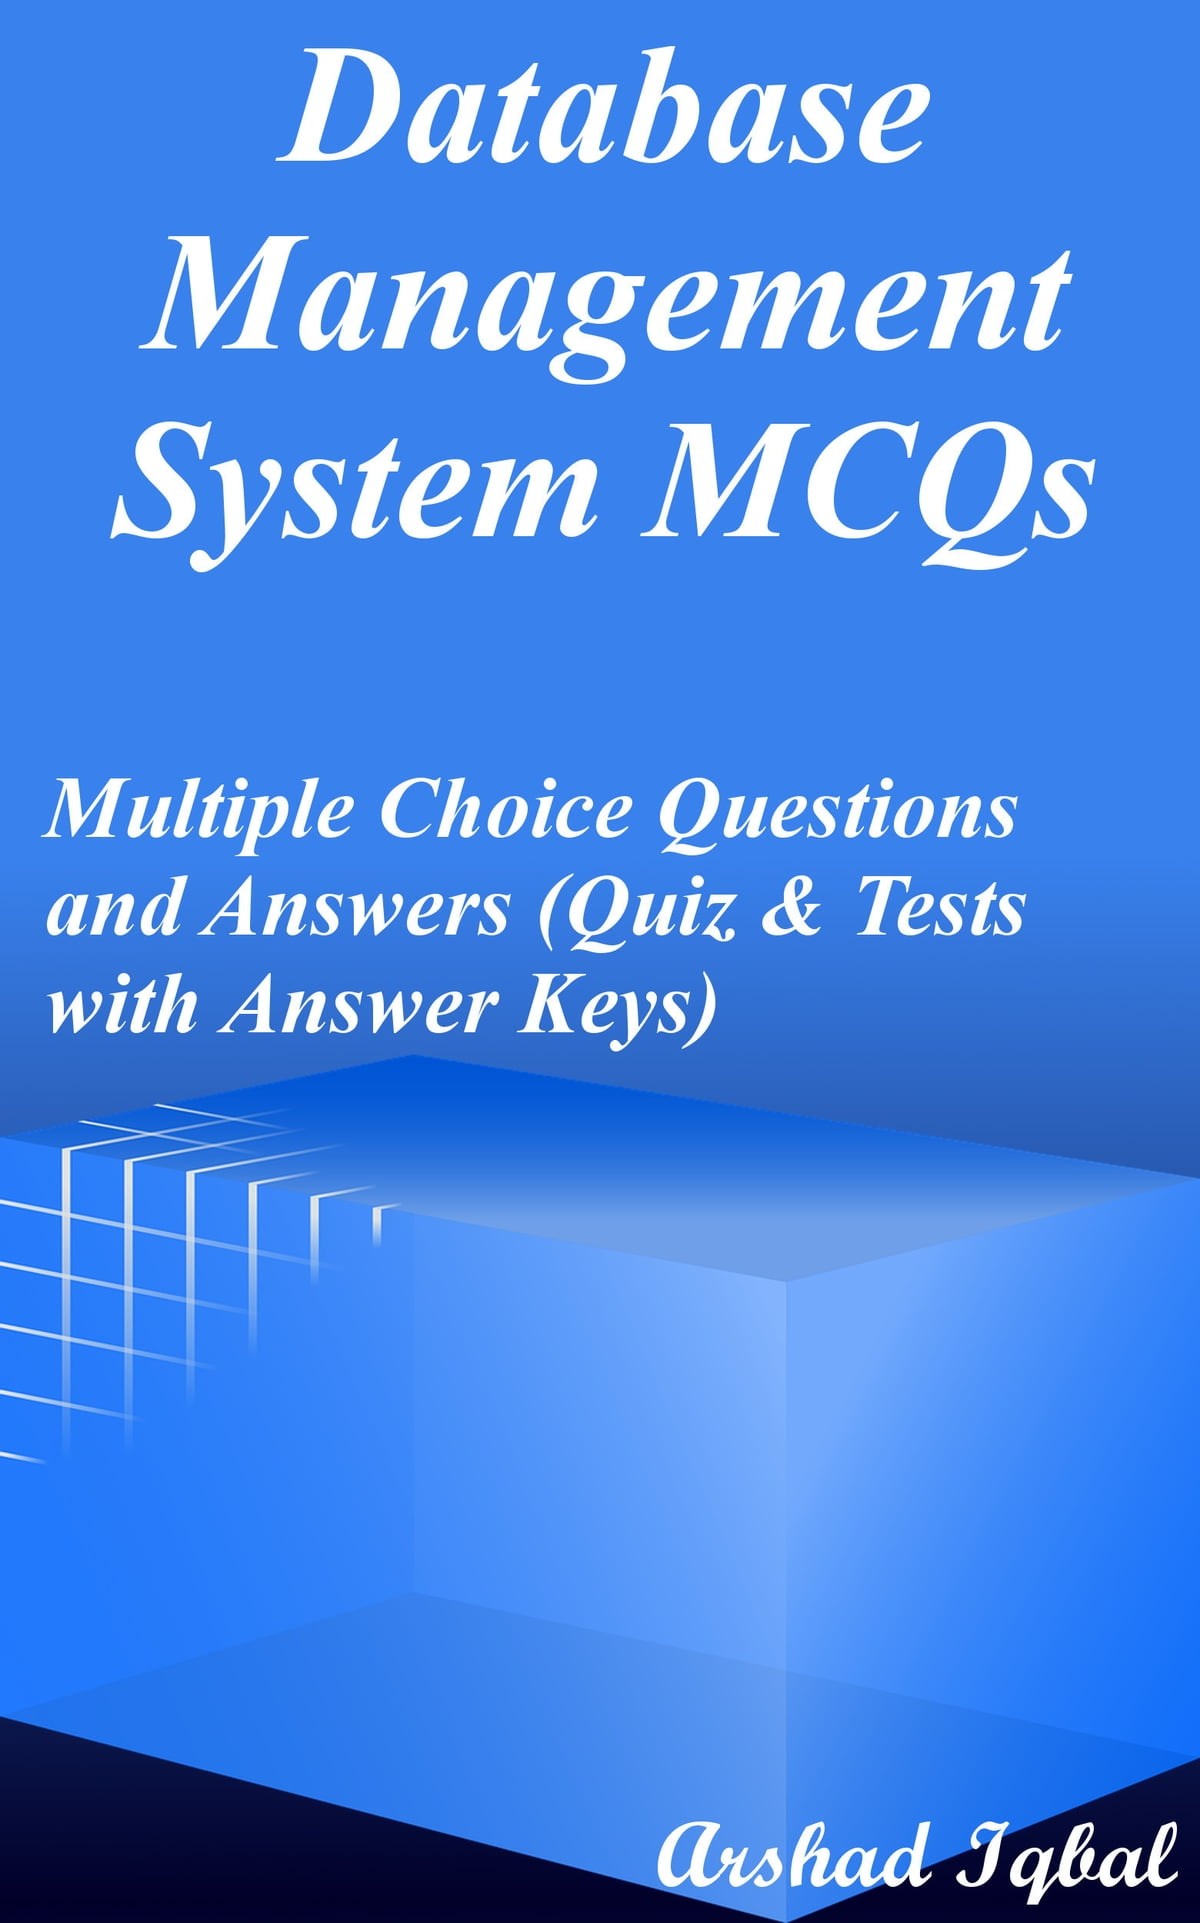 Database Management System MCQs: Multiple Choice Questions and Answers  (Quiz & Tests with Answer Keys) ebook by Arshad Iqbal - Rakuten Kobo